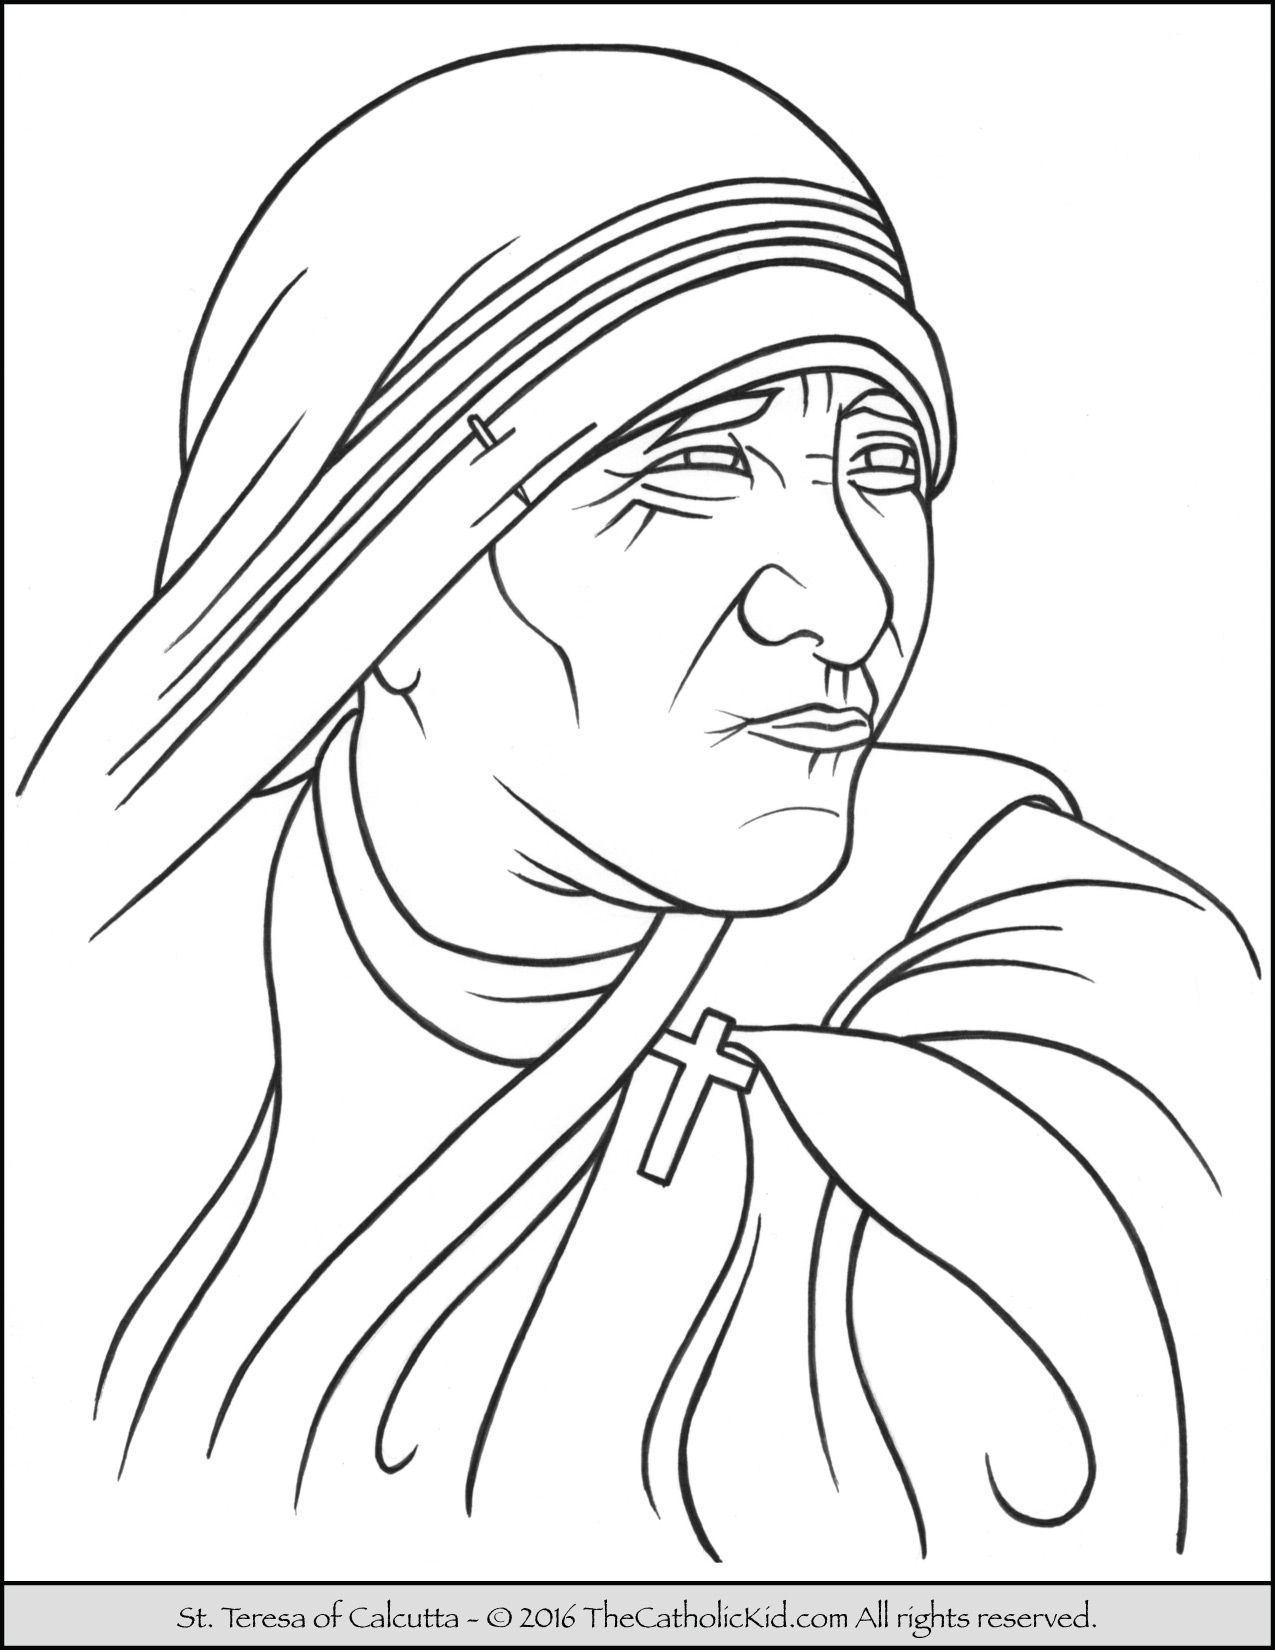 Saint Teresa of Calcutta Coloring Page TheCatholicKid